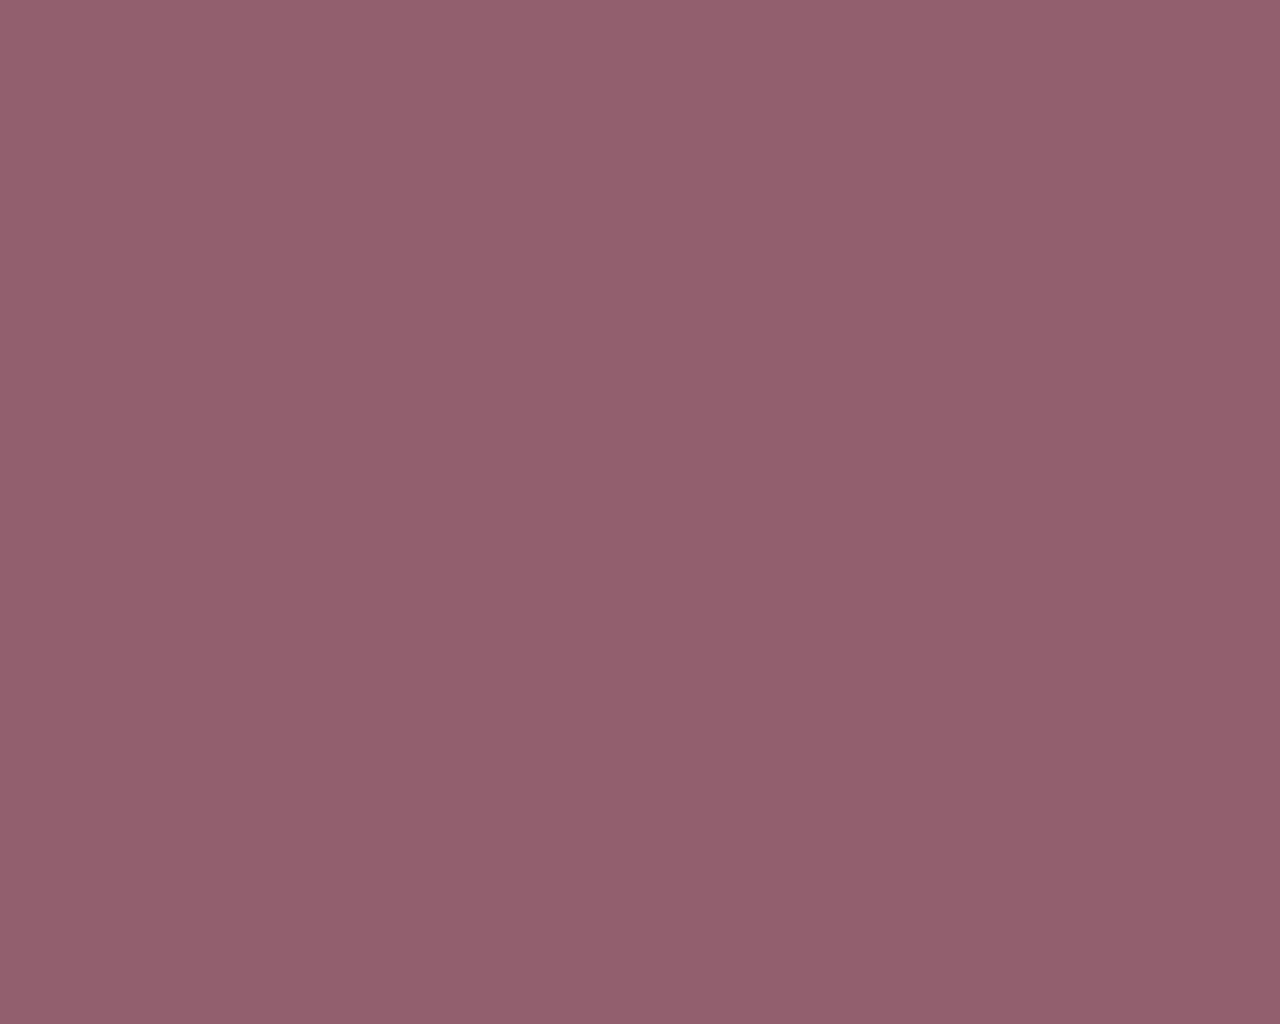 1280x1024 Mauve Taupe Solid Color Background